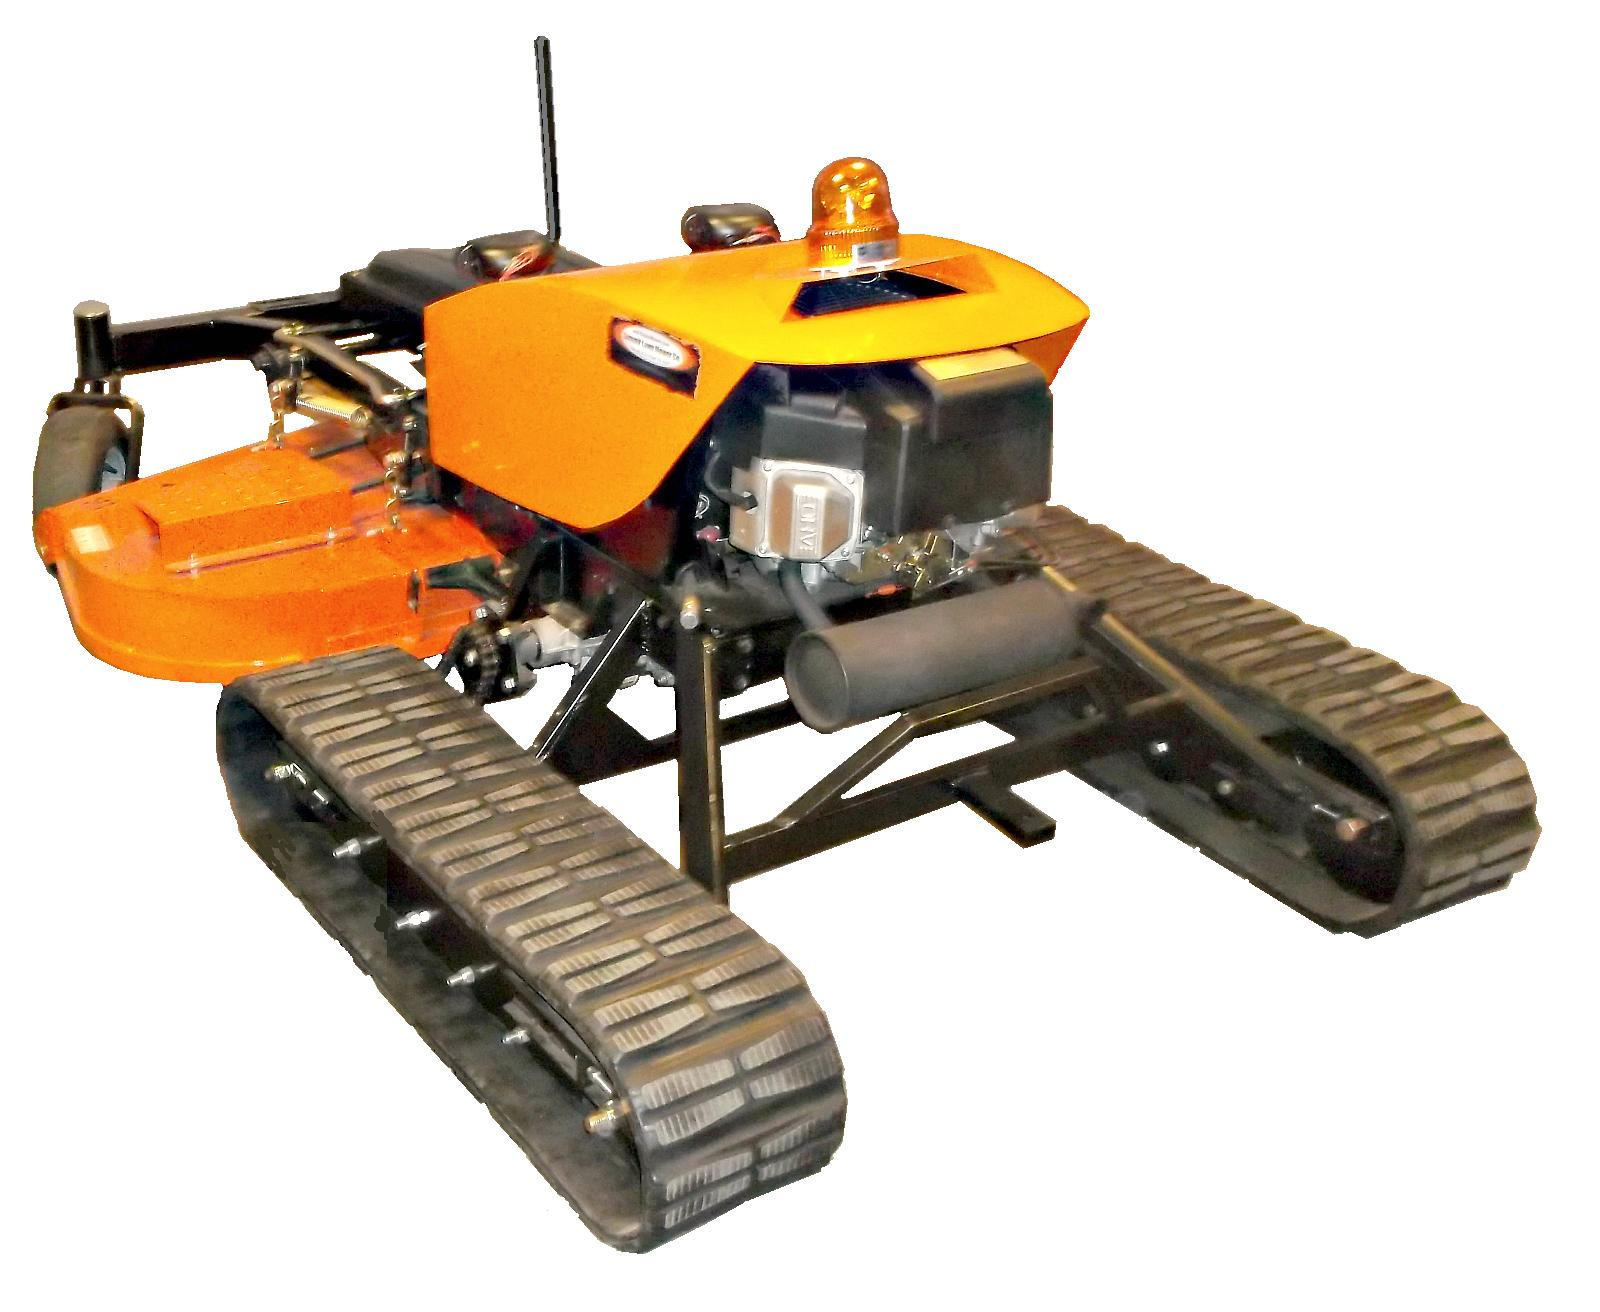 Summit Lawn Mower Company Introduces the World's First ...